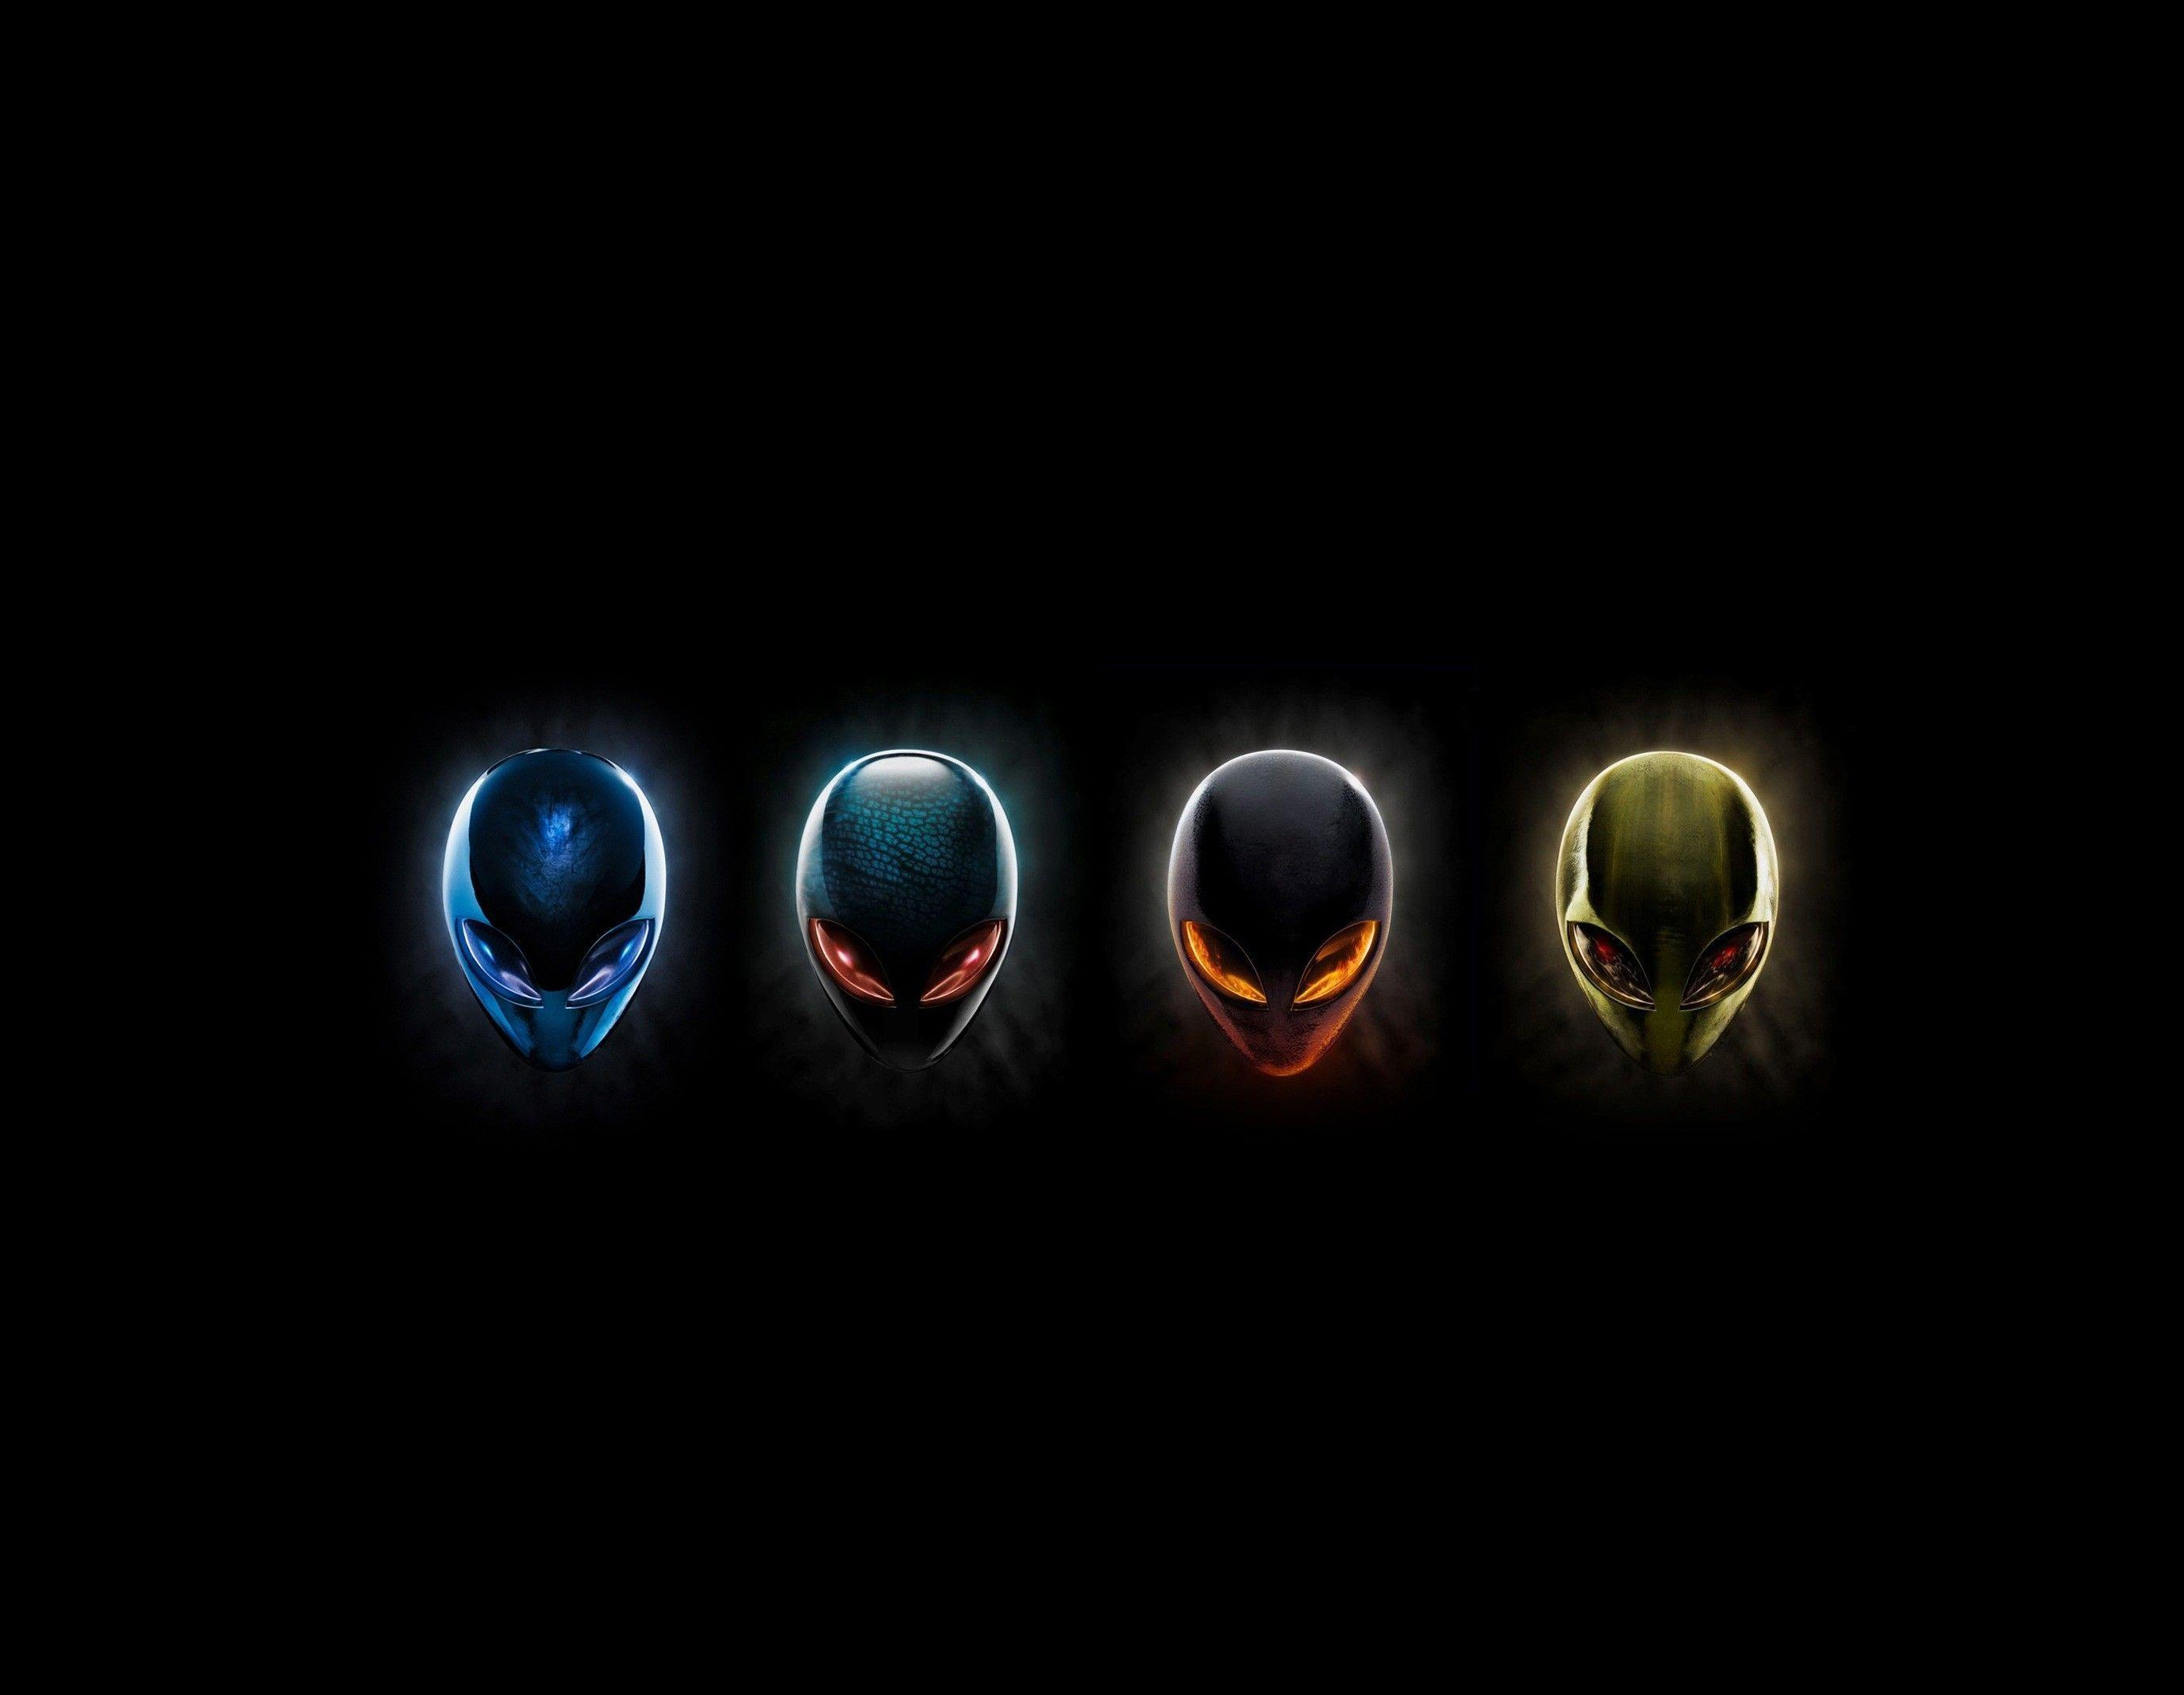 103 Alienware Wallpapers | Alienware Backgrounds